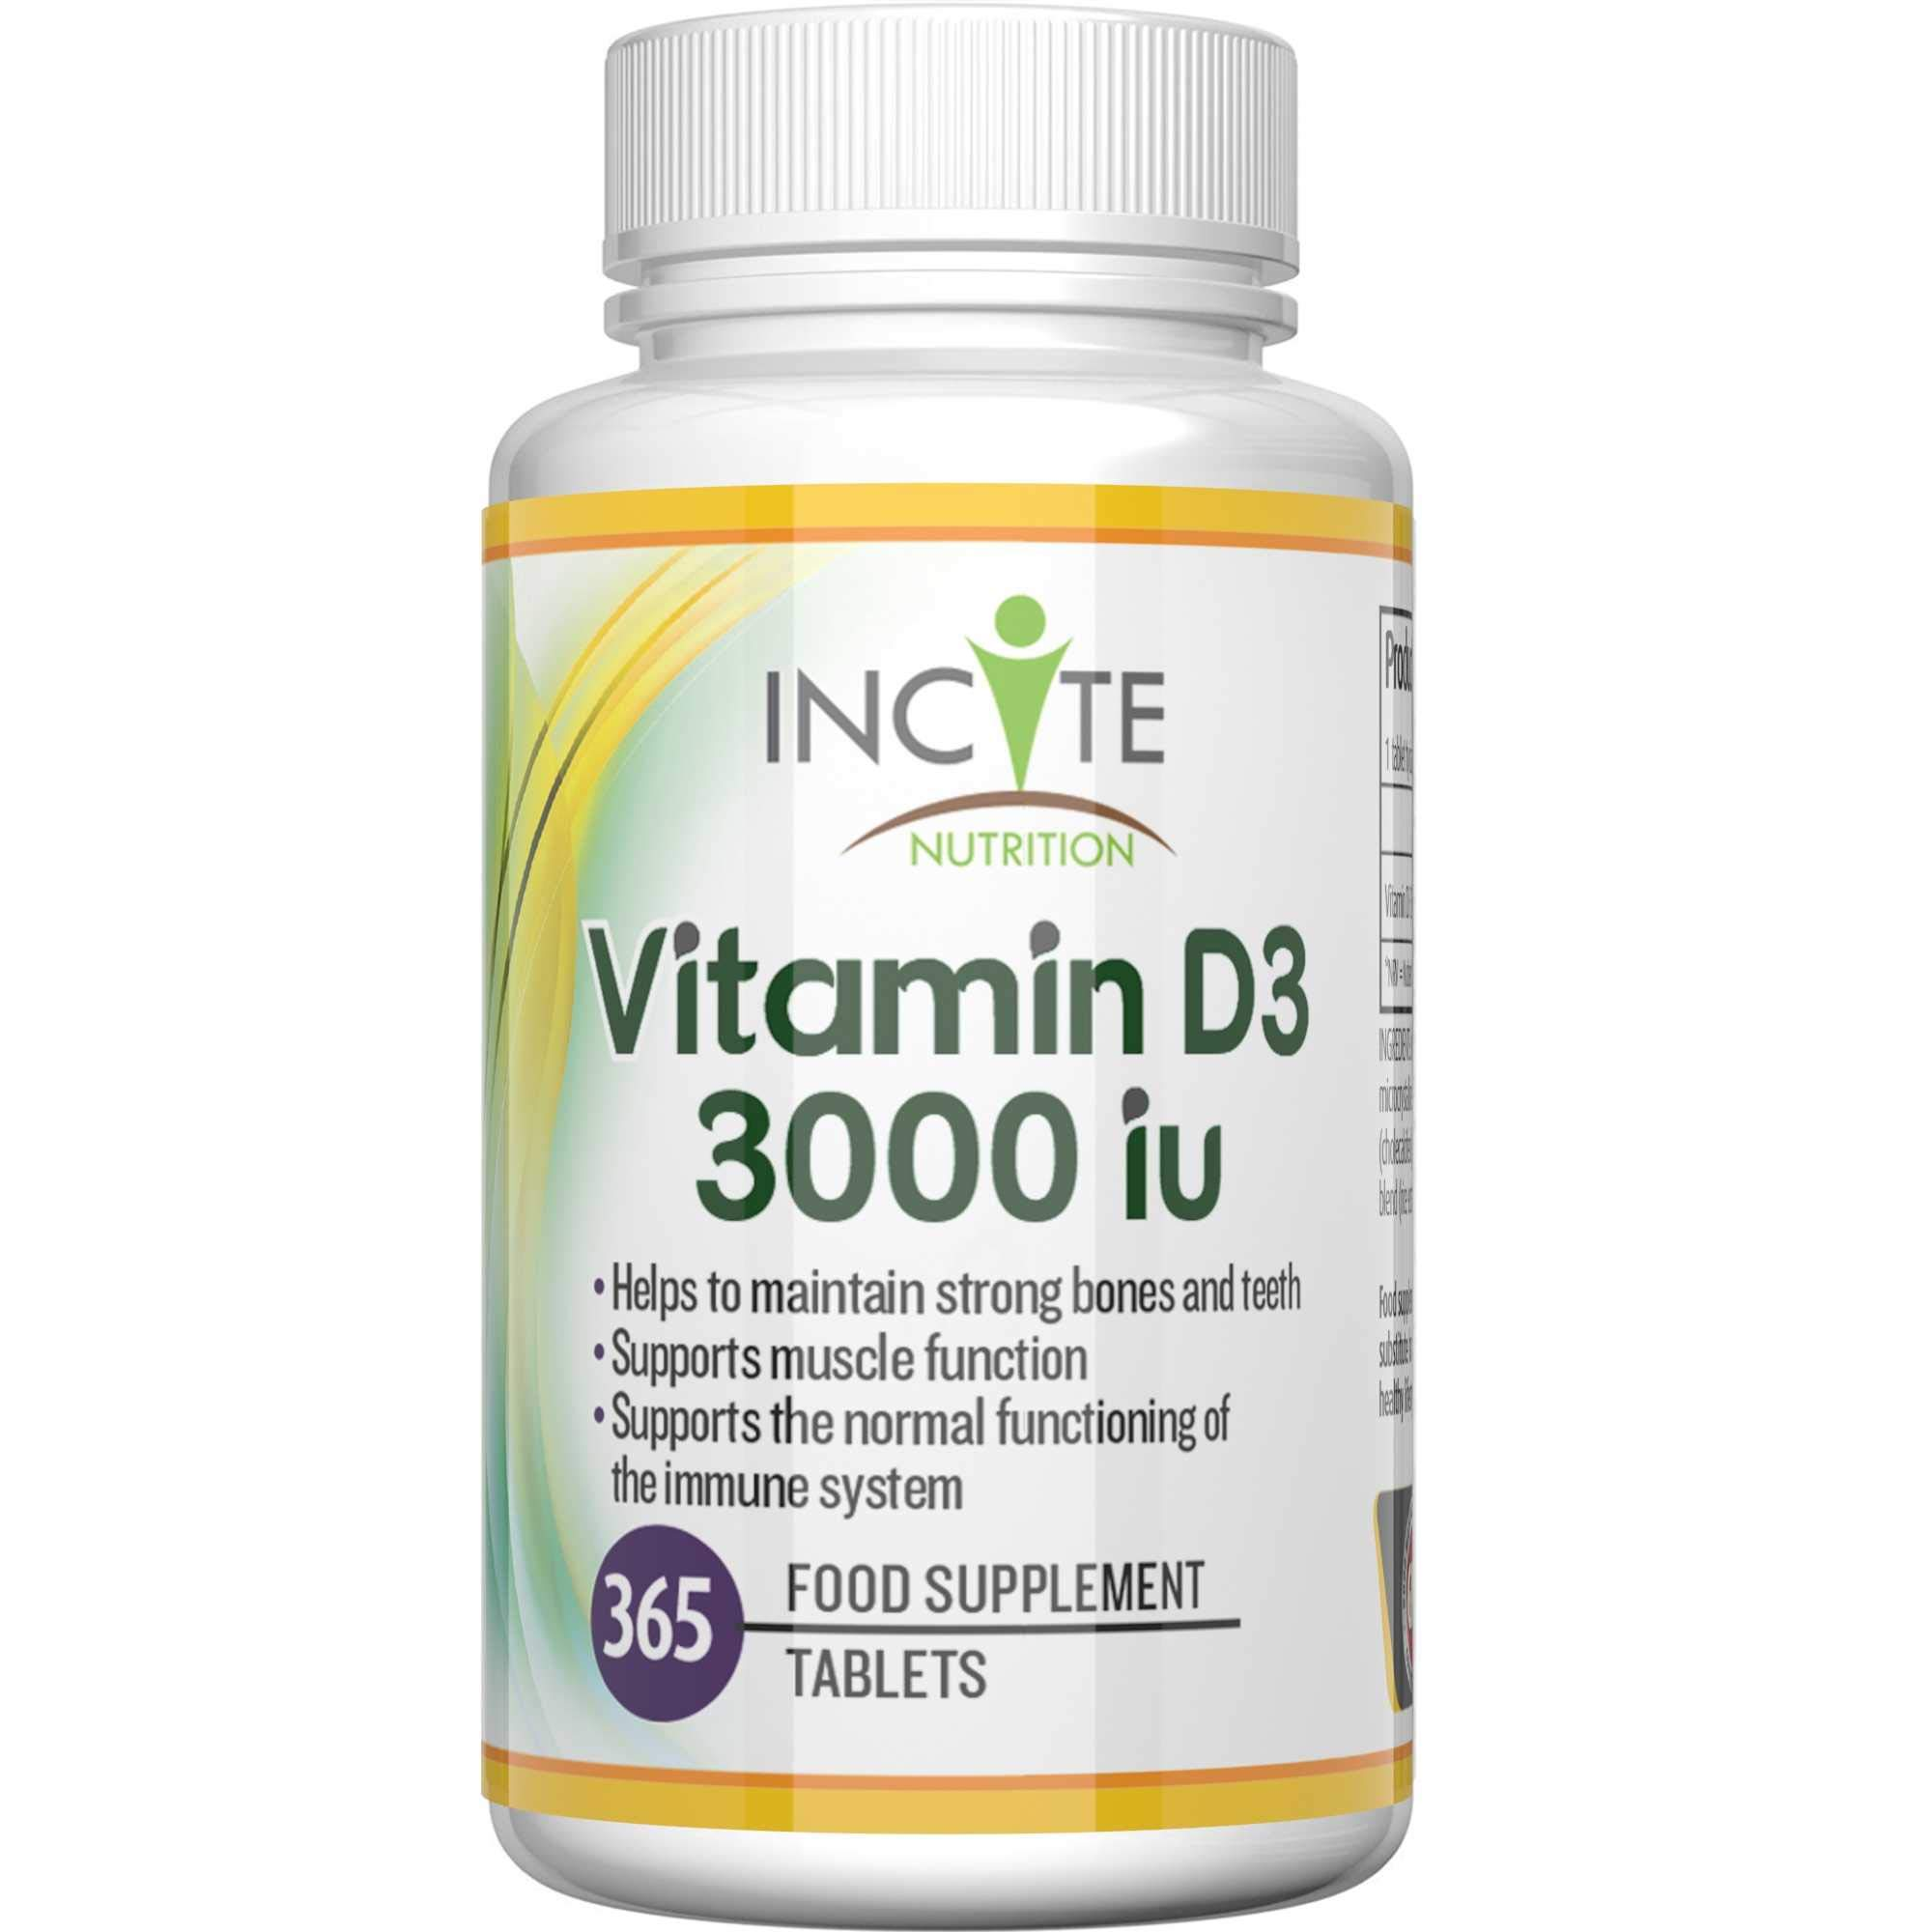 Vitamin D 3 3000iu Supplements - 365 Days (One Year) Supply Of High Strength Vitamin D Tablets - High Absorption Cholecalciferol Vit D3 – Does not contain Gluten or Dairy product image